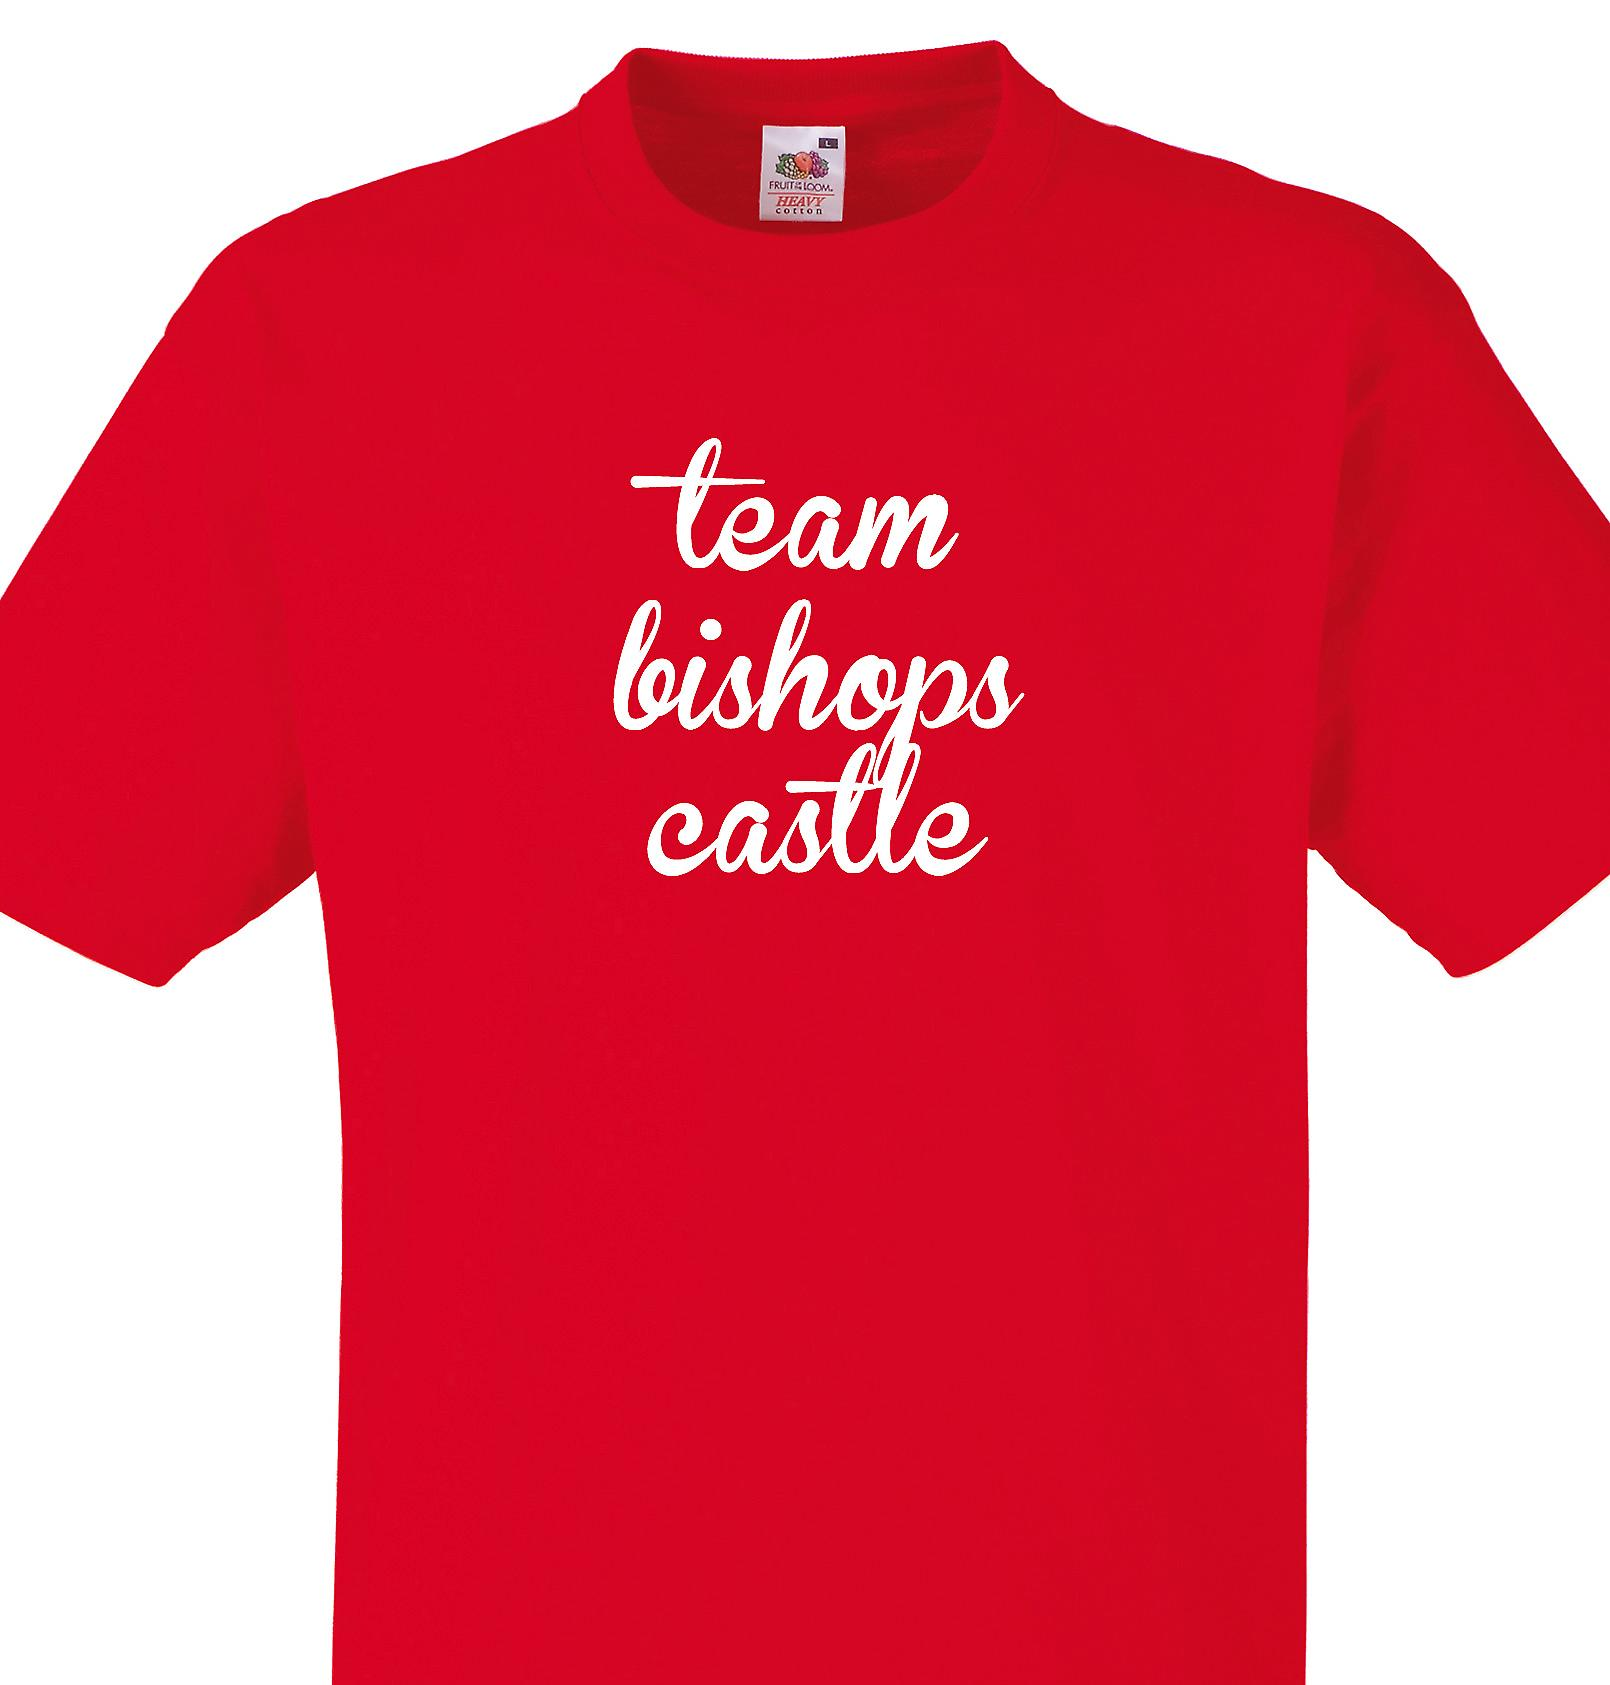 Team Bishops castle Red T shirt